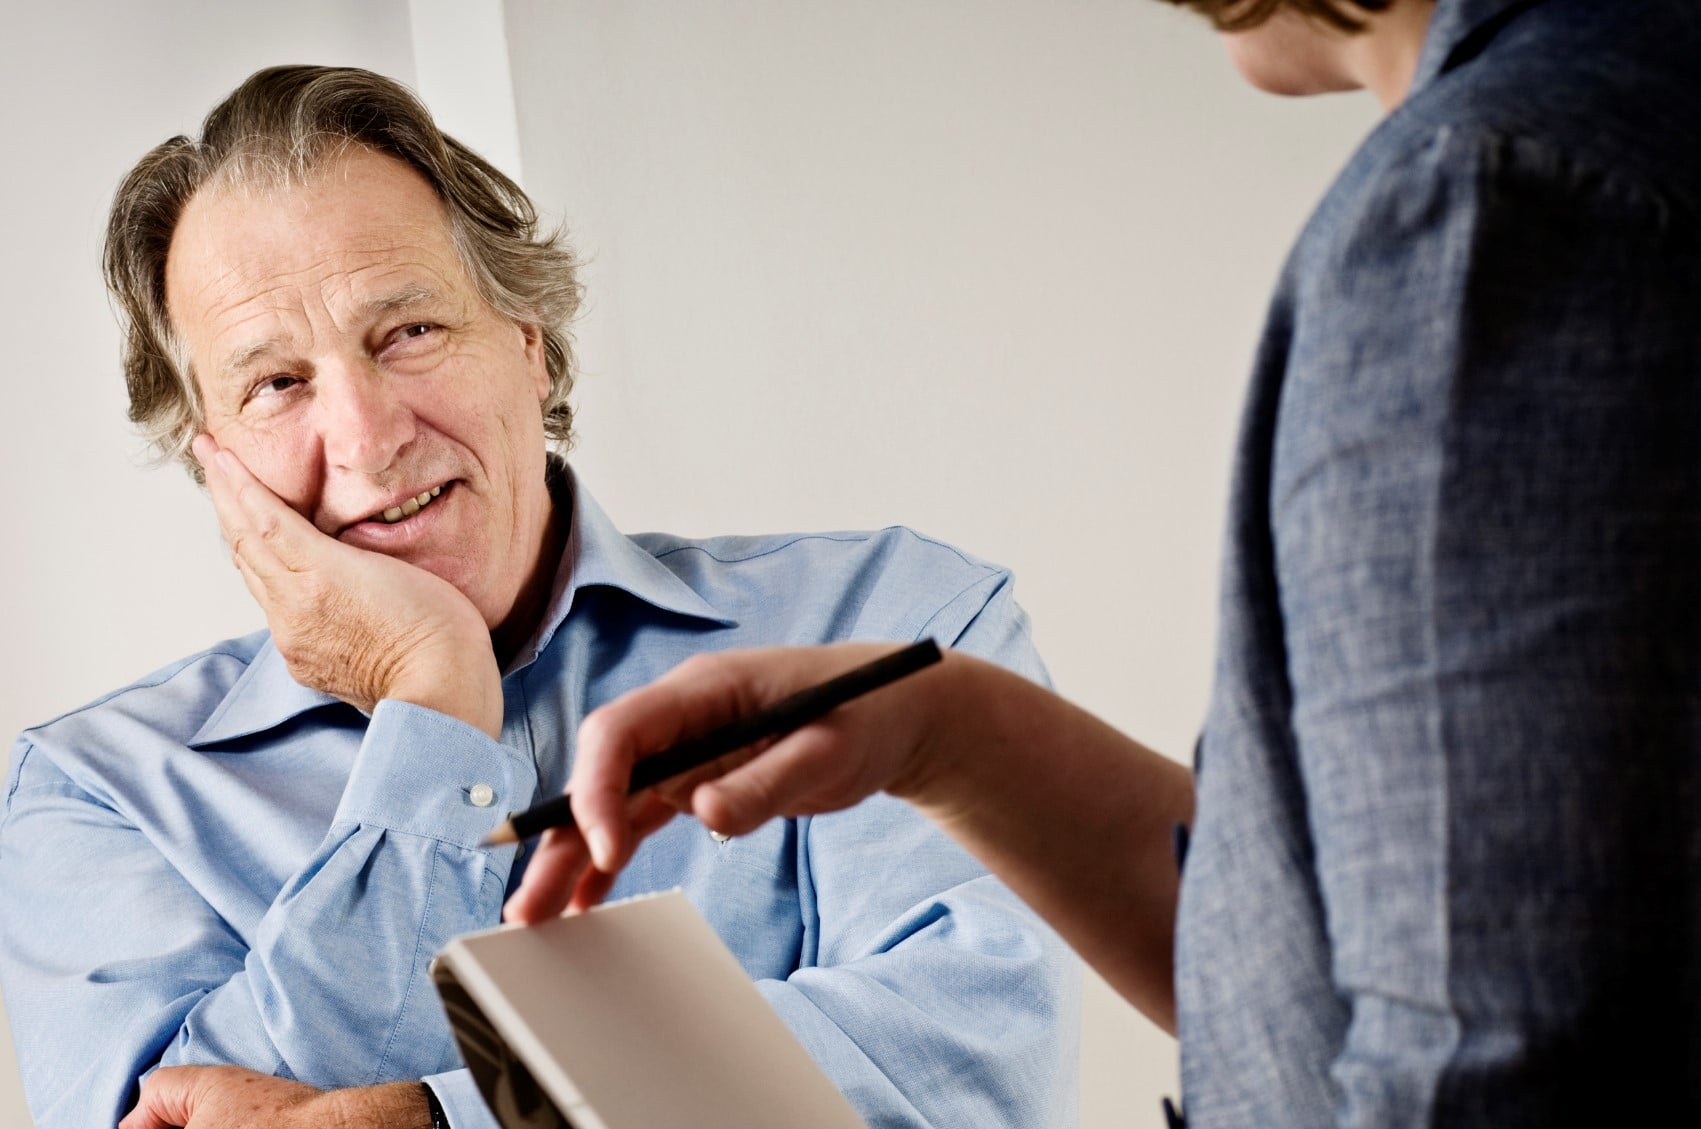 Leadership speakers and authors, Bob Vanourek and Gregg Vanourek, use the image of an older gentleman listening intently to a co-worker to illustrate the feedback process